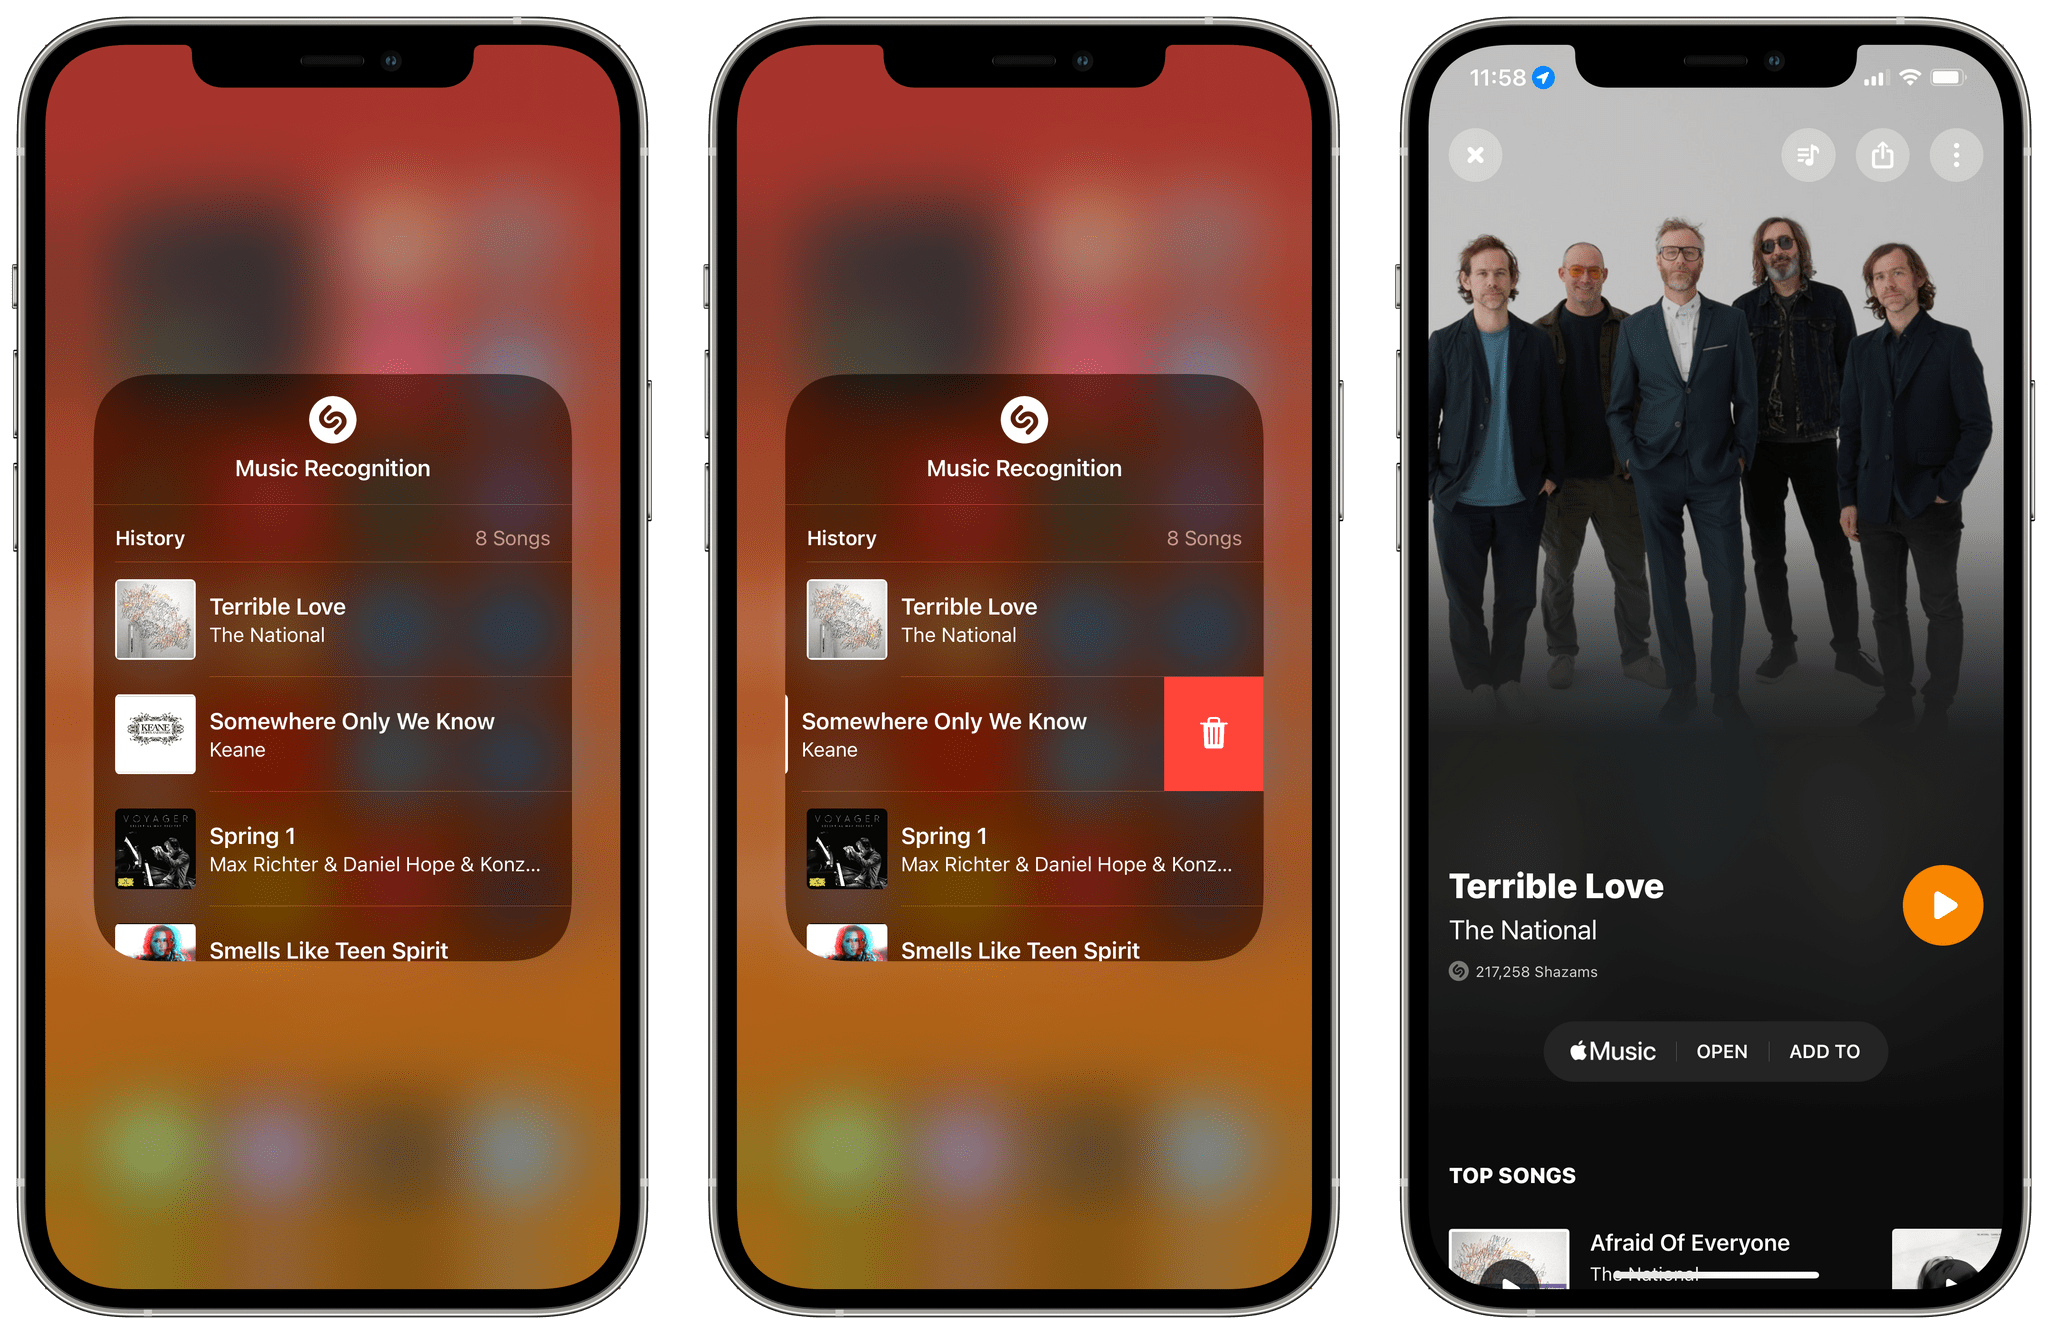 Viewing recently recognized songs from Control Center.